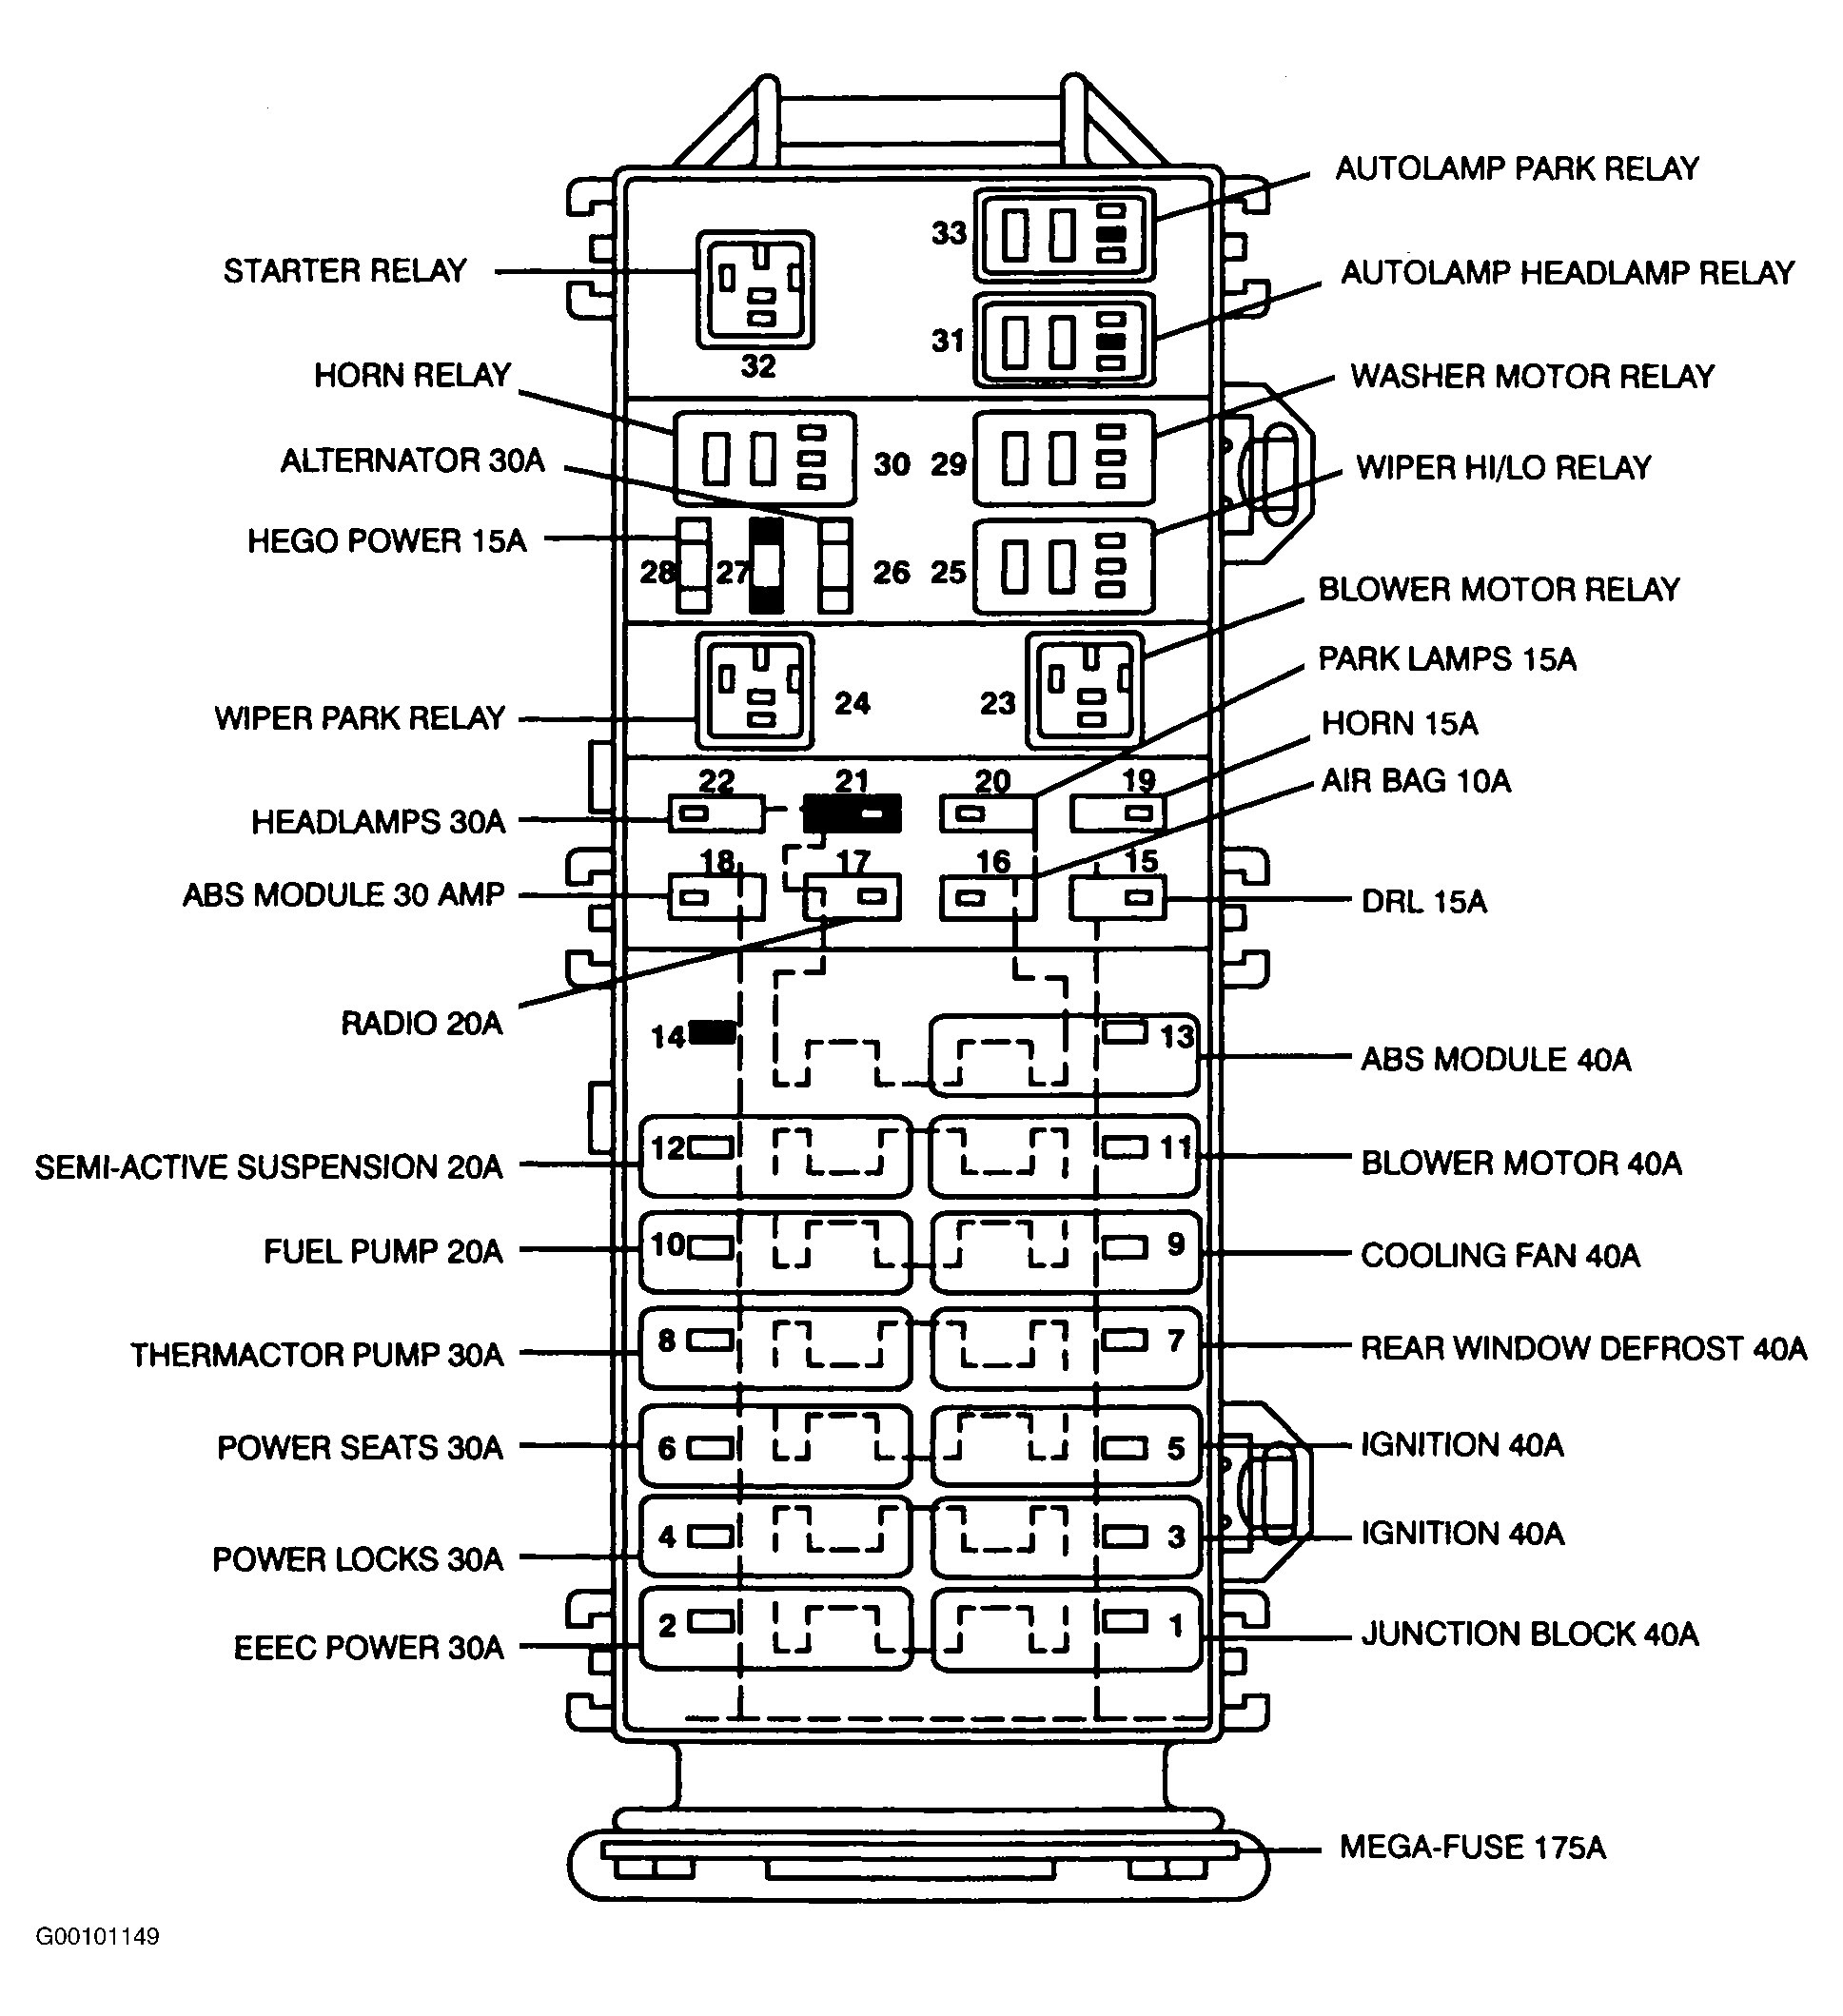 [DIAGRAM] 93 Ford Taurus Sho Wiring Diagram FULL Version